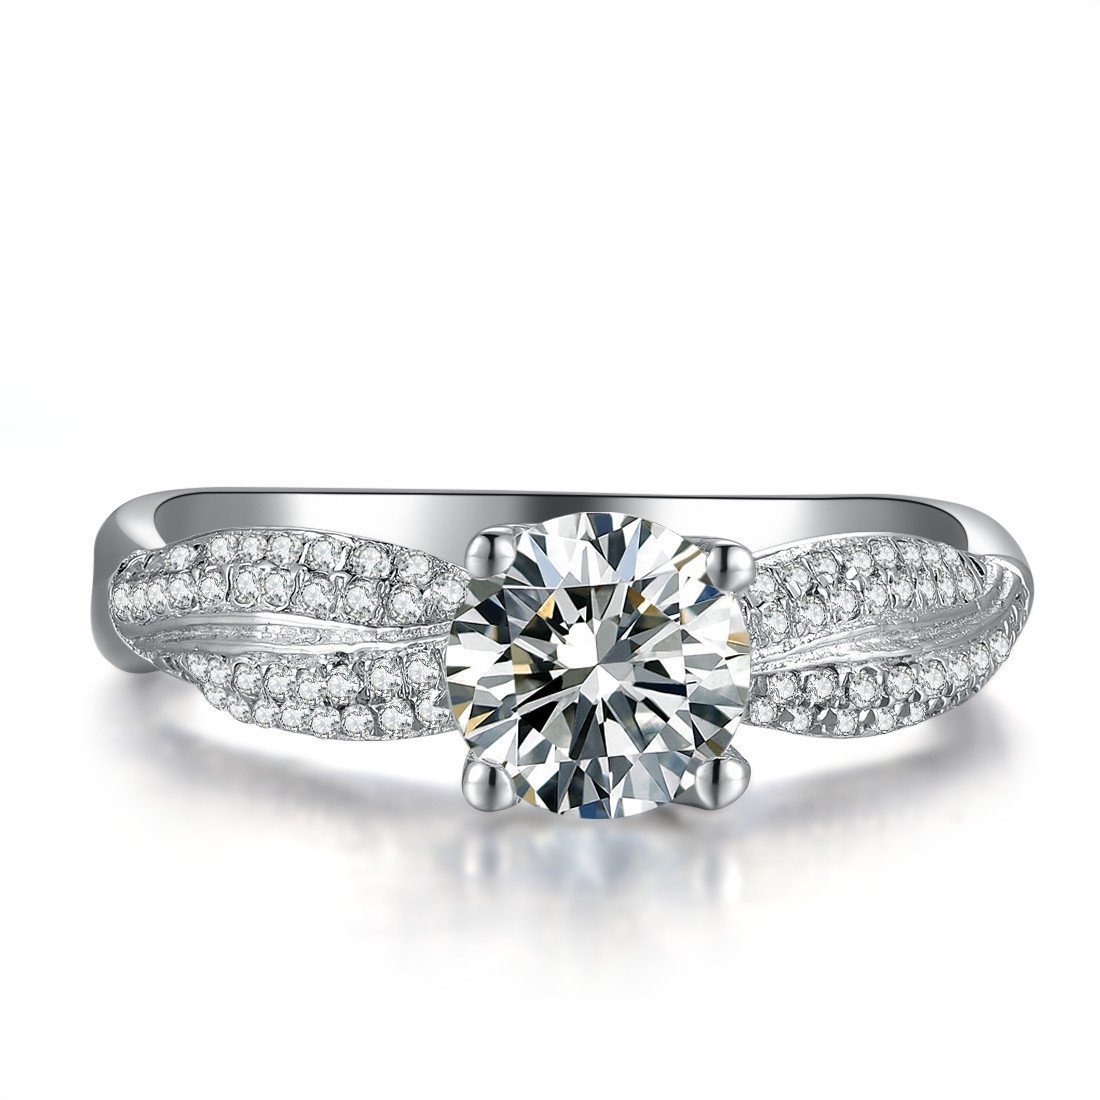 1CT Super Luxury Micro Paved NSCD Diamond Ring Engagement Jewelry for Women 3MJEWELRY SRMJZ0143